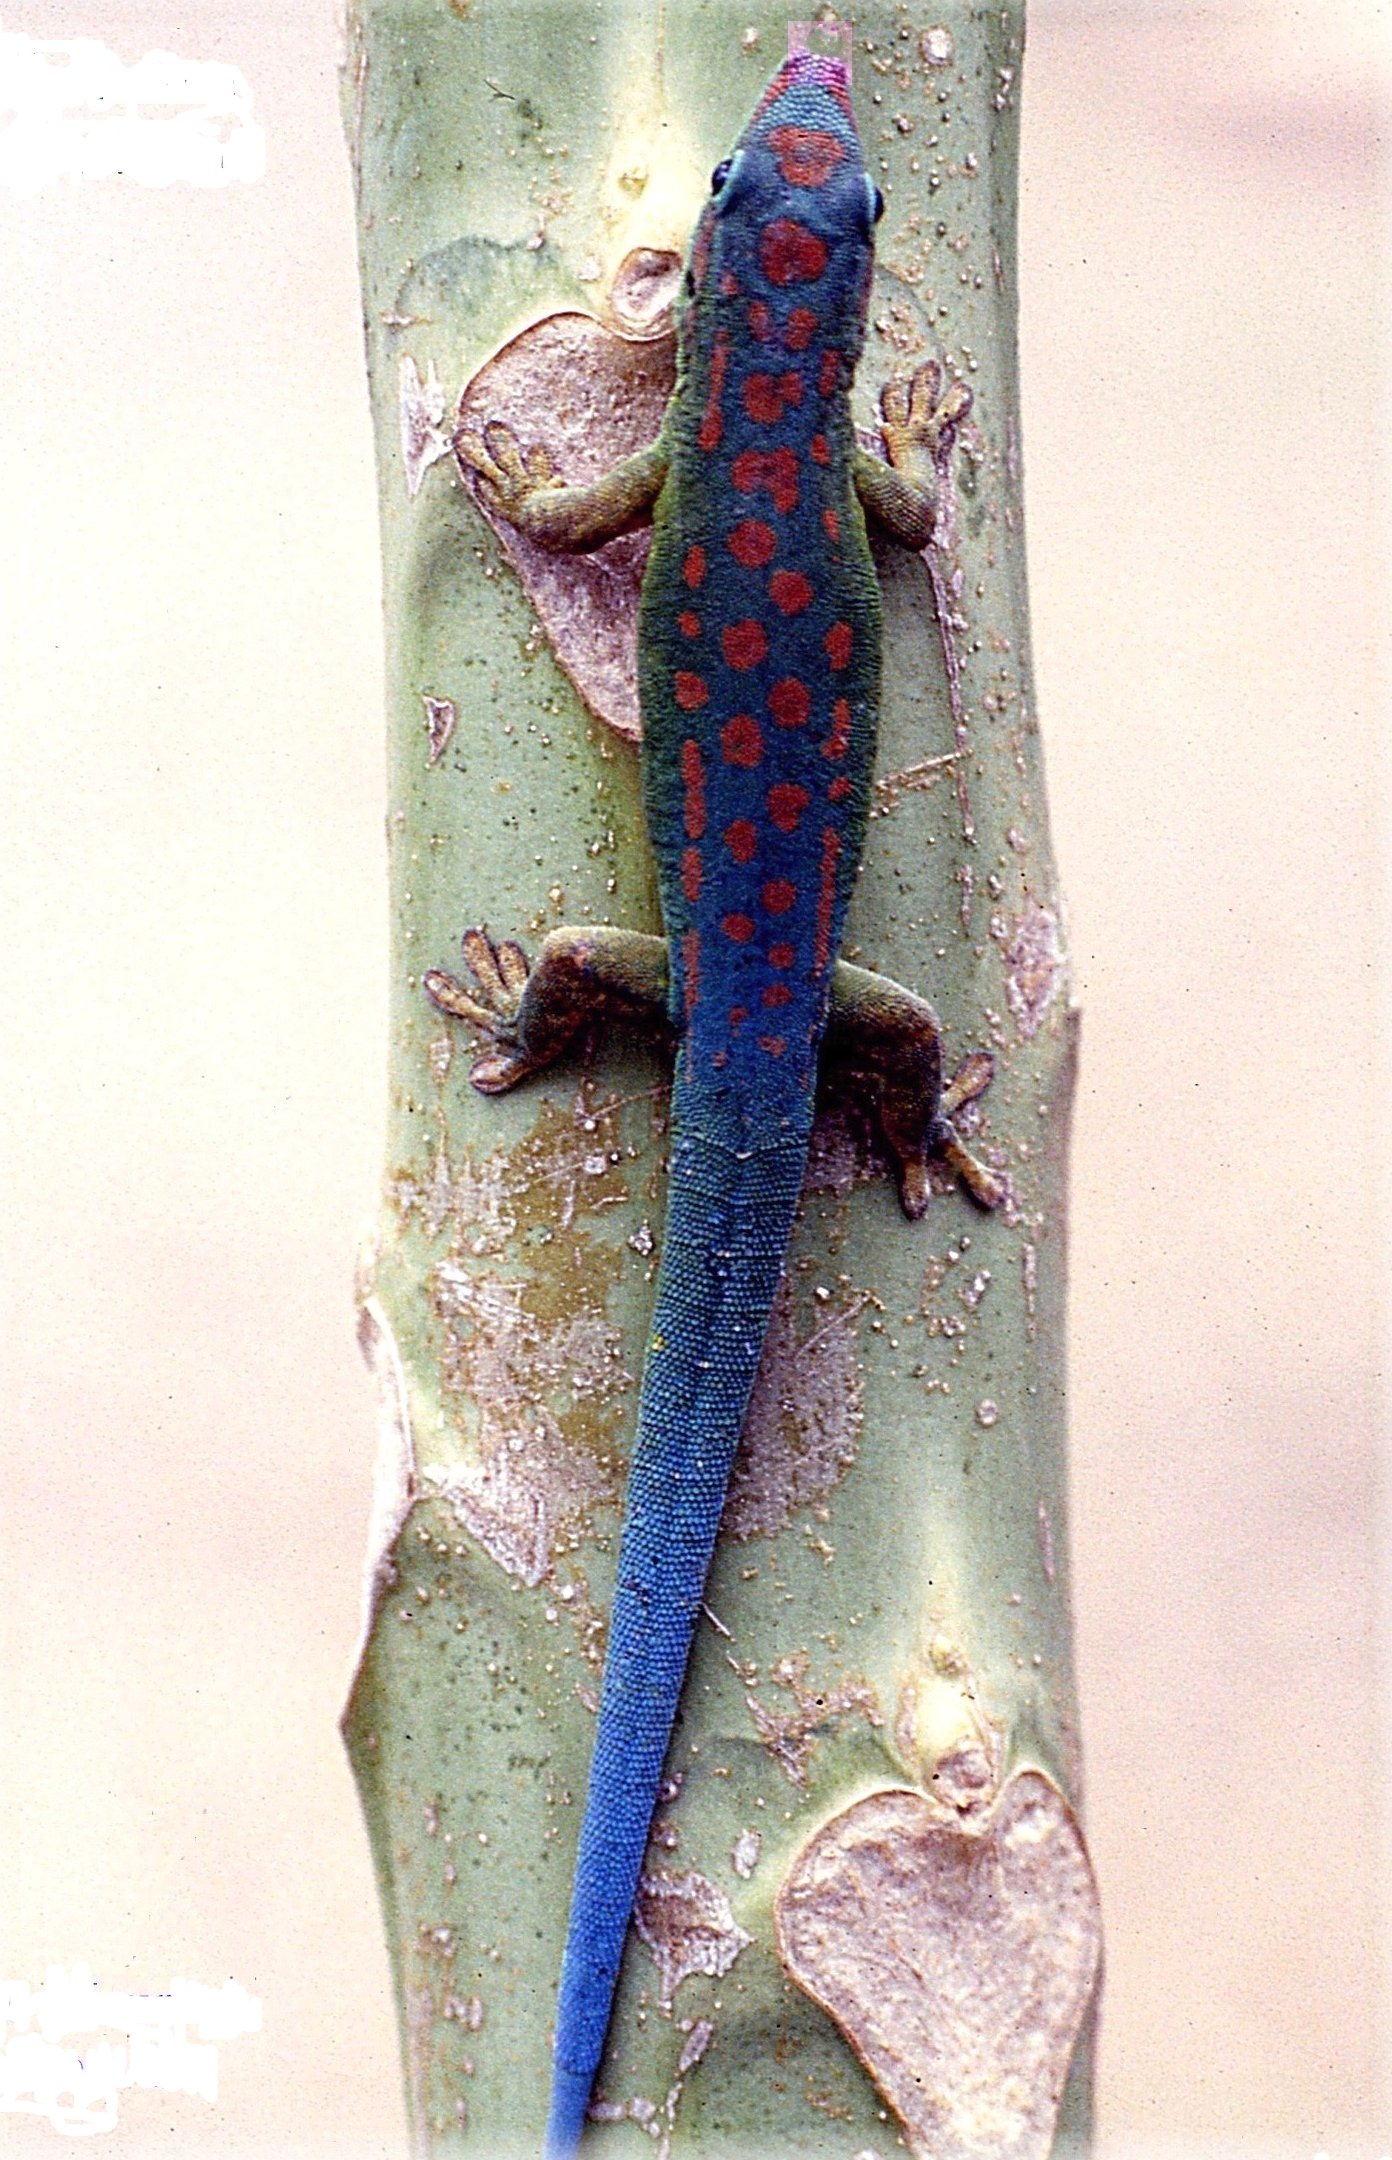 Blue-Tailed Day Gecko